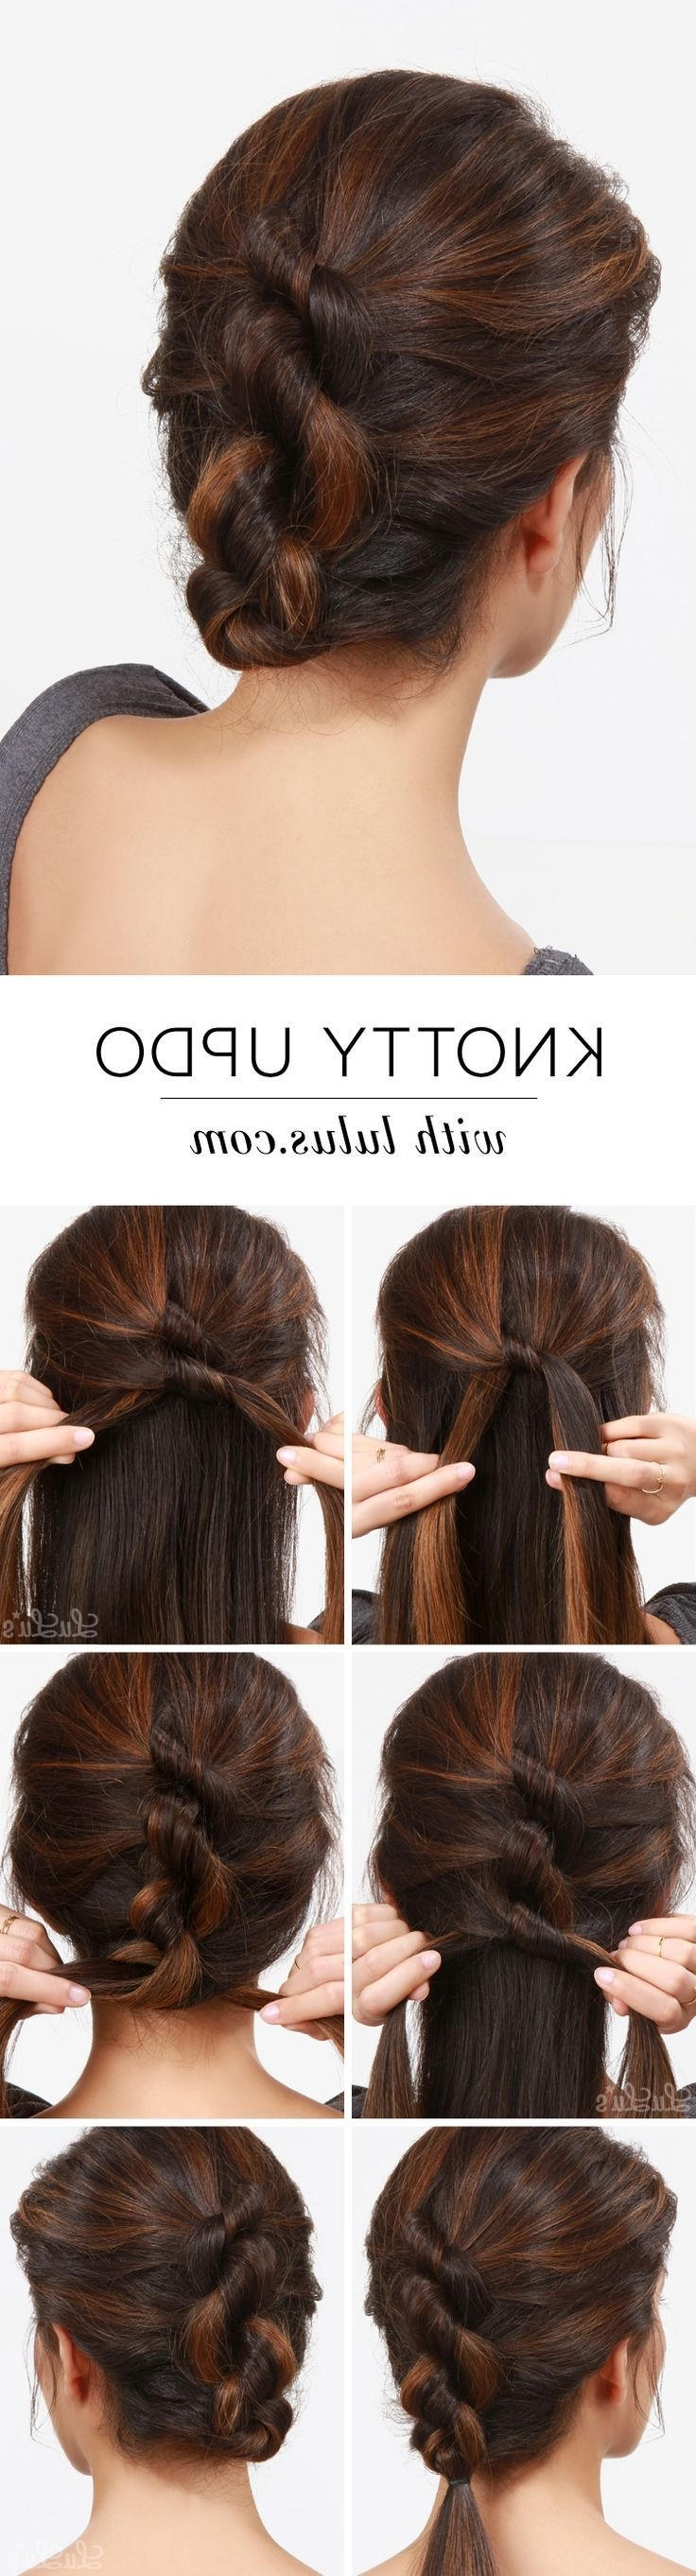 157 Best Hair Tutorials Images On Pinterest | Hairstyle Ideas Pertaining To Easy Updos For Medium Thin Hair (View 4 of 15)